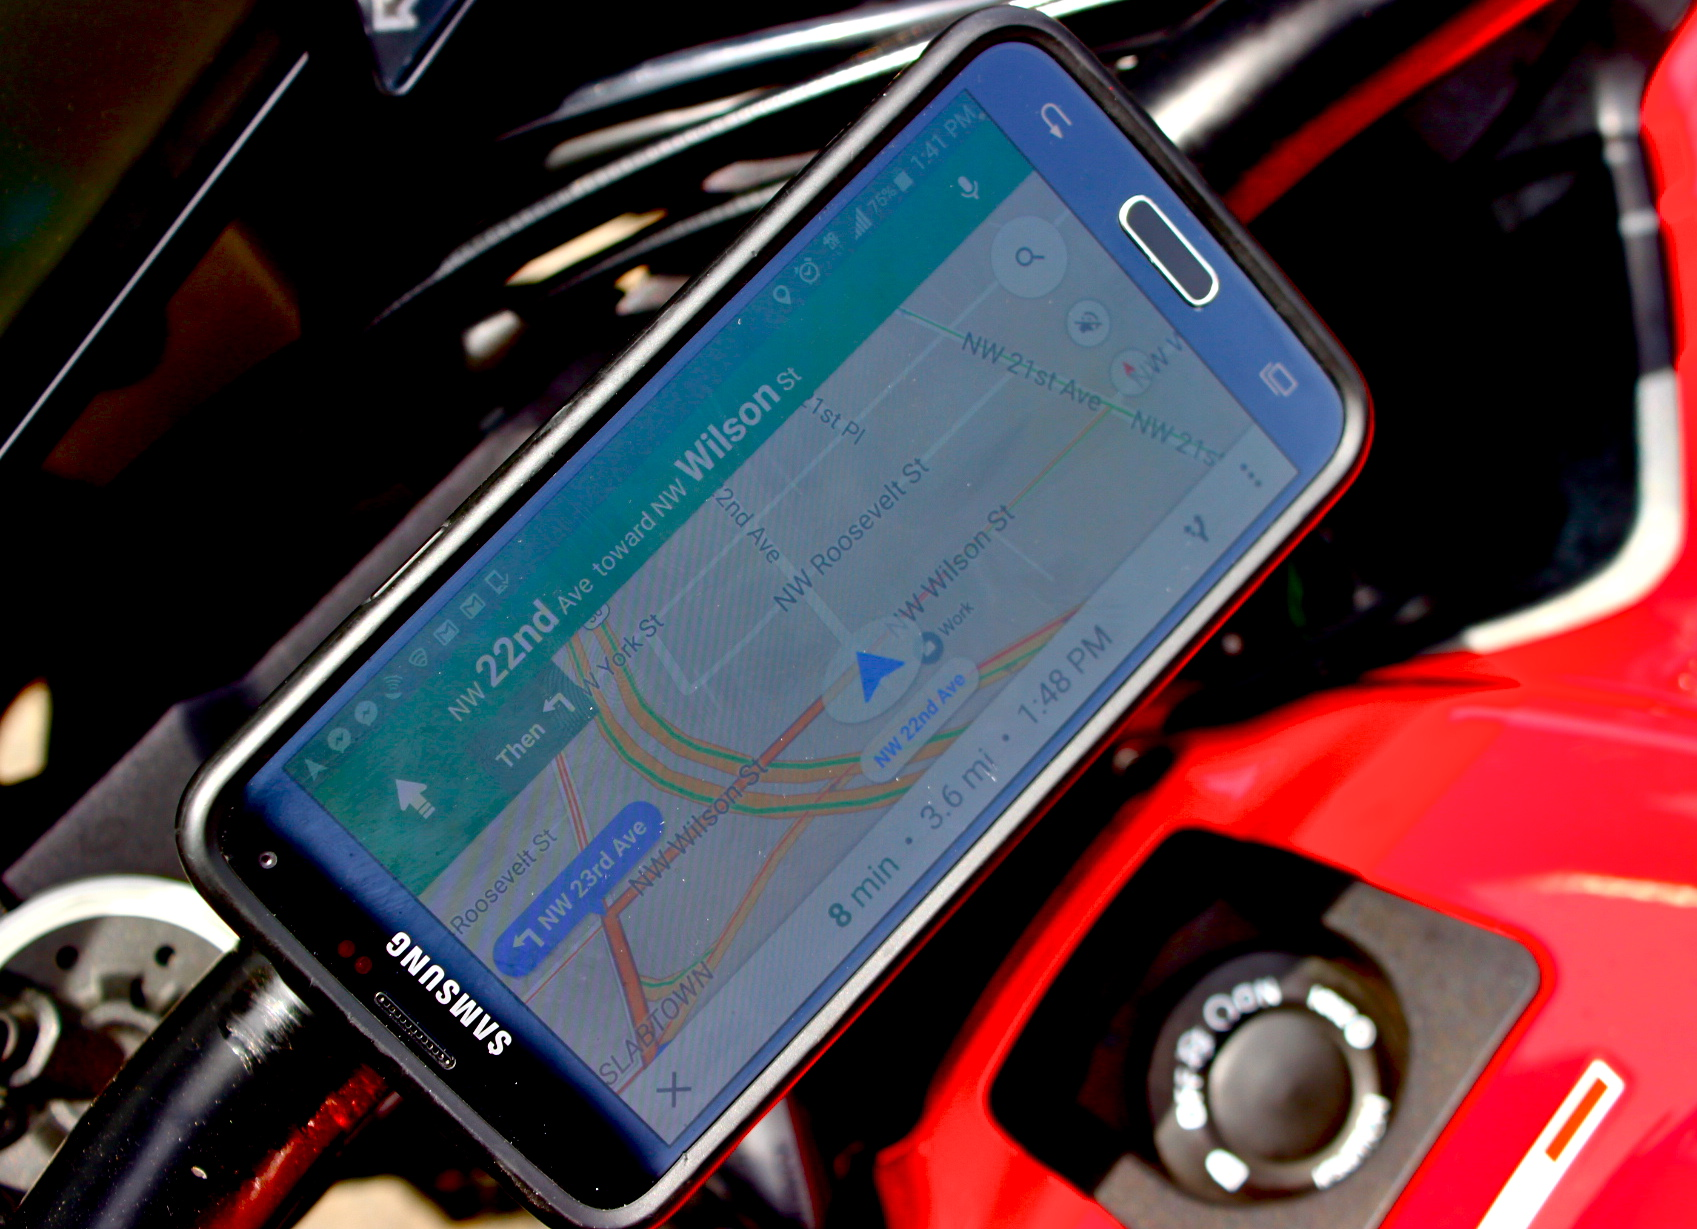 Although made for bicycle applications, once properly mounted on your motorcycle, the design is pretty fantastic for GPS application usage of your smartphone device.